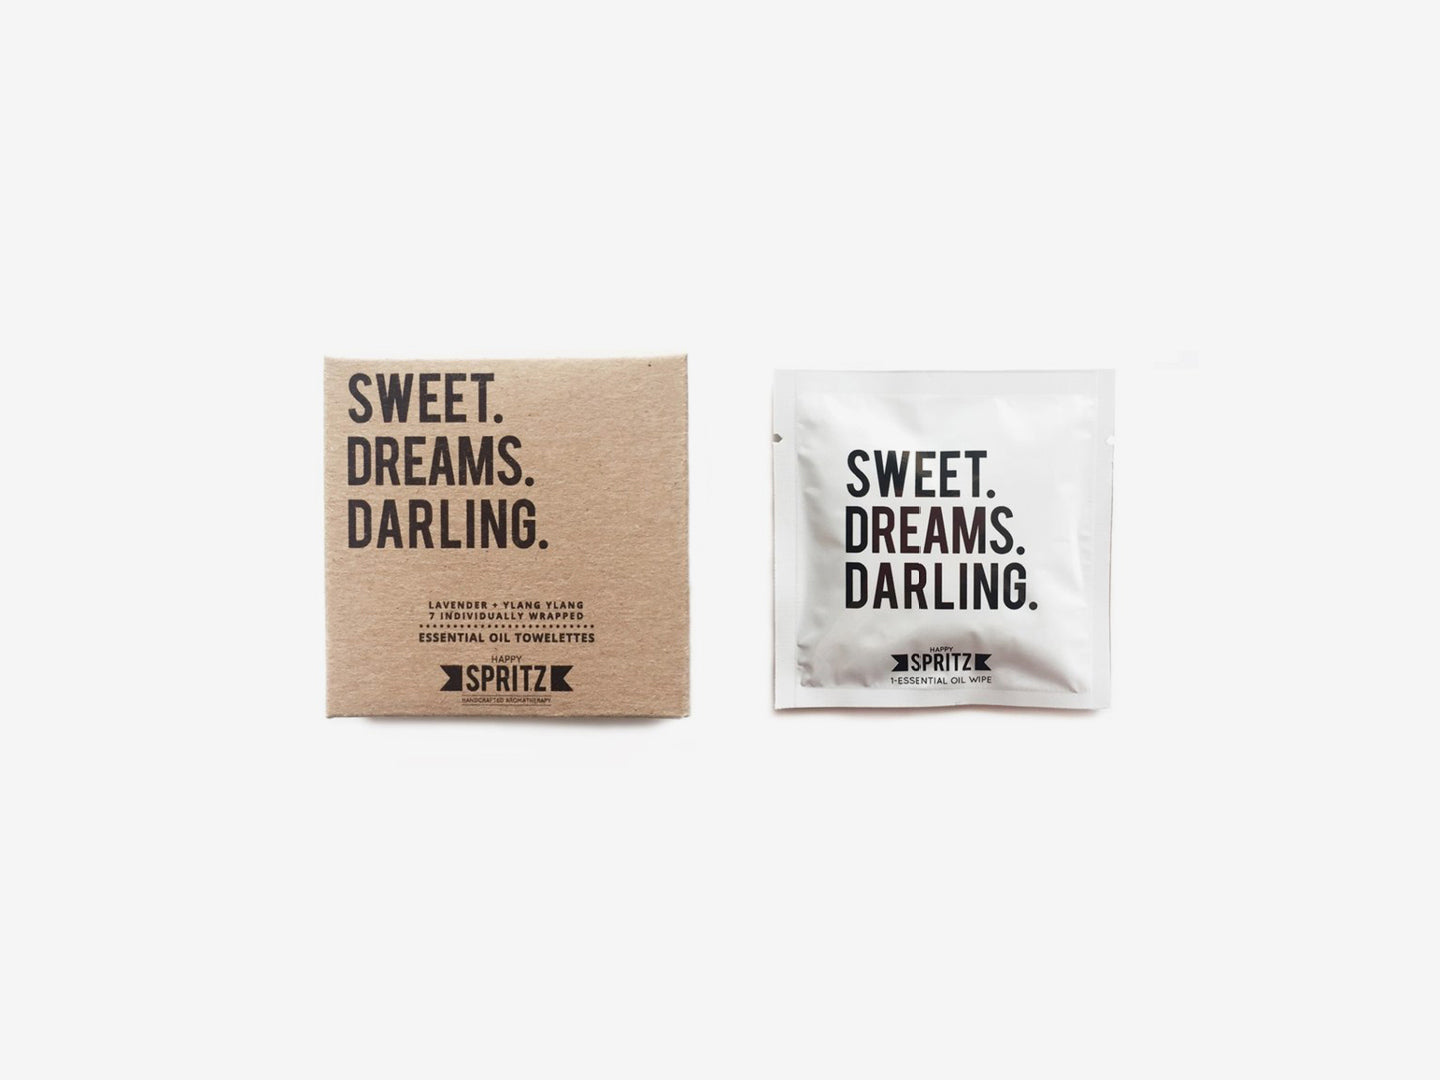 Essential Oil Towelettes – Sweet Dreams Darling